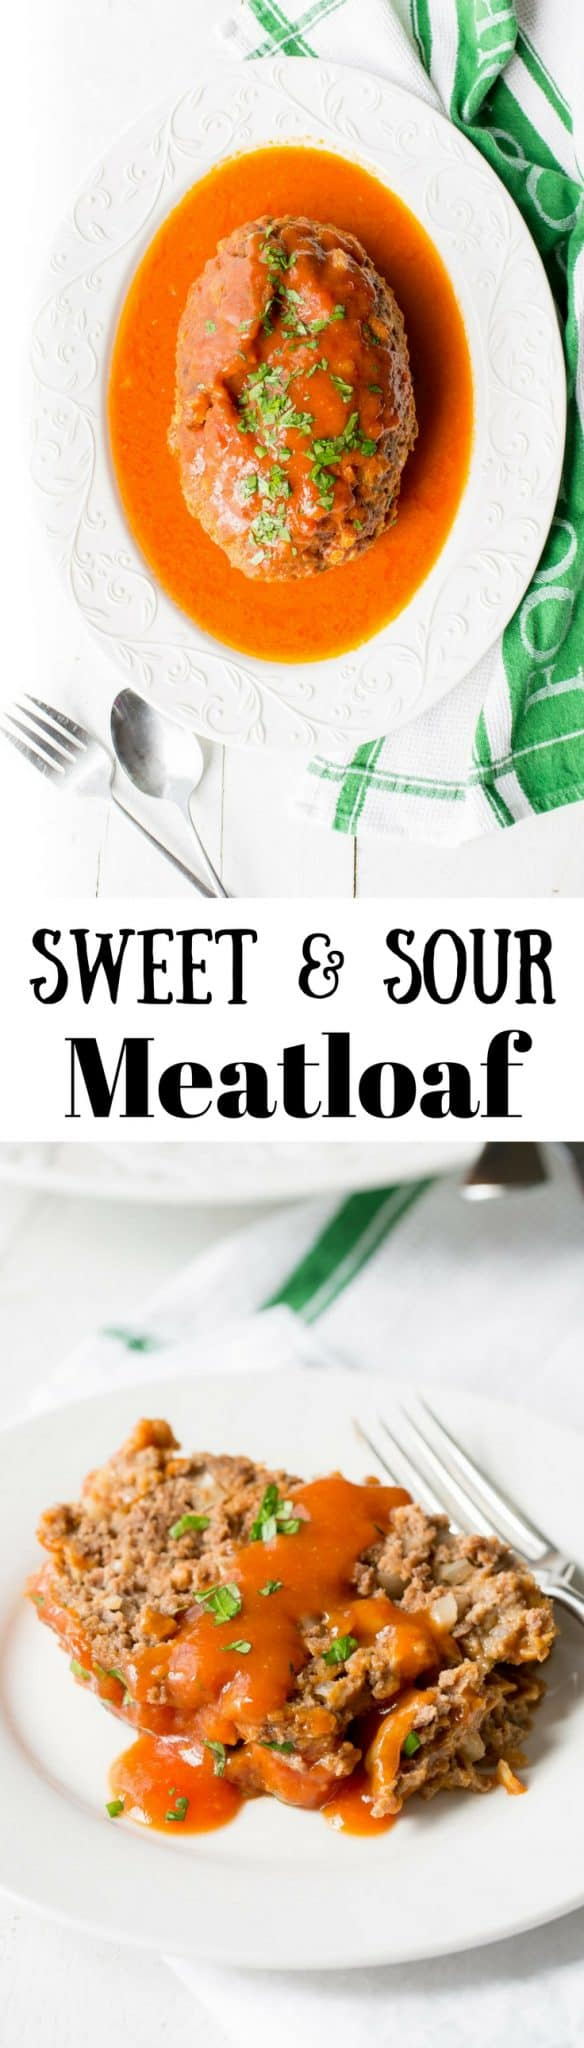 Sweet and Sour Meatloaf (sometimes called Dutch Meatloaf) ~ a tangy, juicy meatloaf covered in an easy sweet and sour sauce made with ketchup, mustard, vinegar and brown sugar. www.savingdessert.com